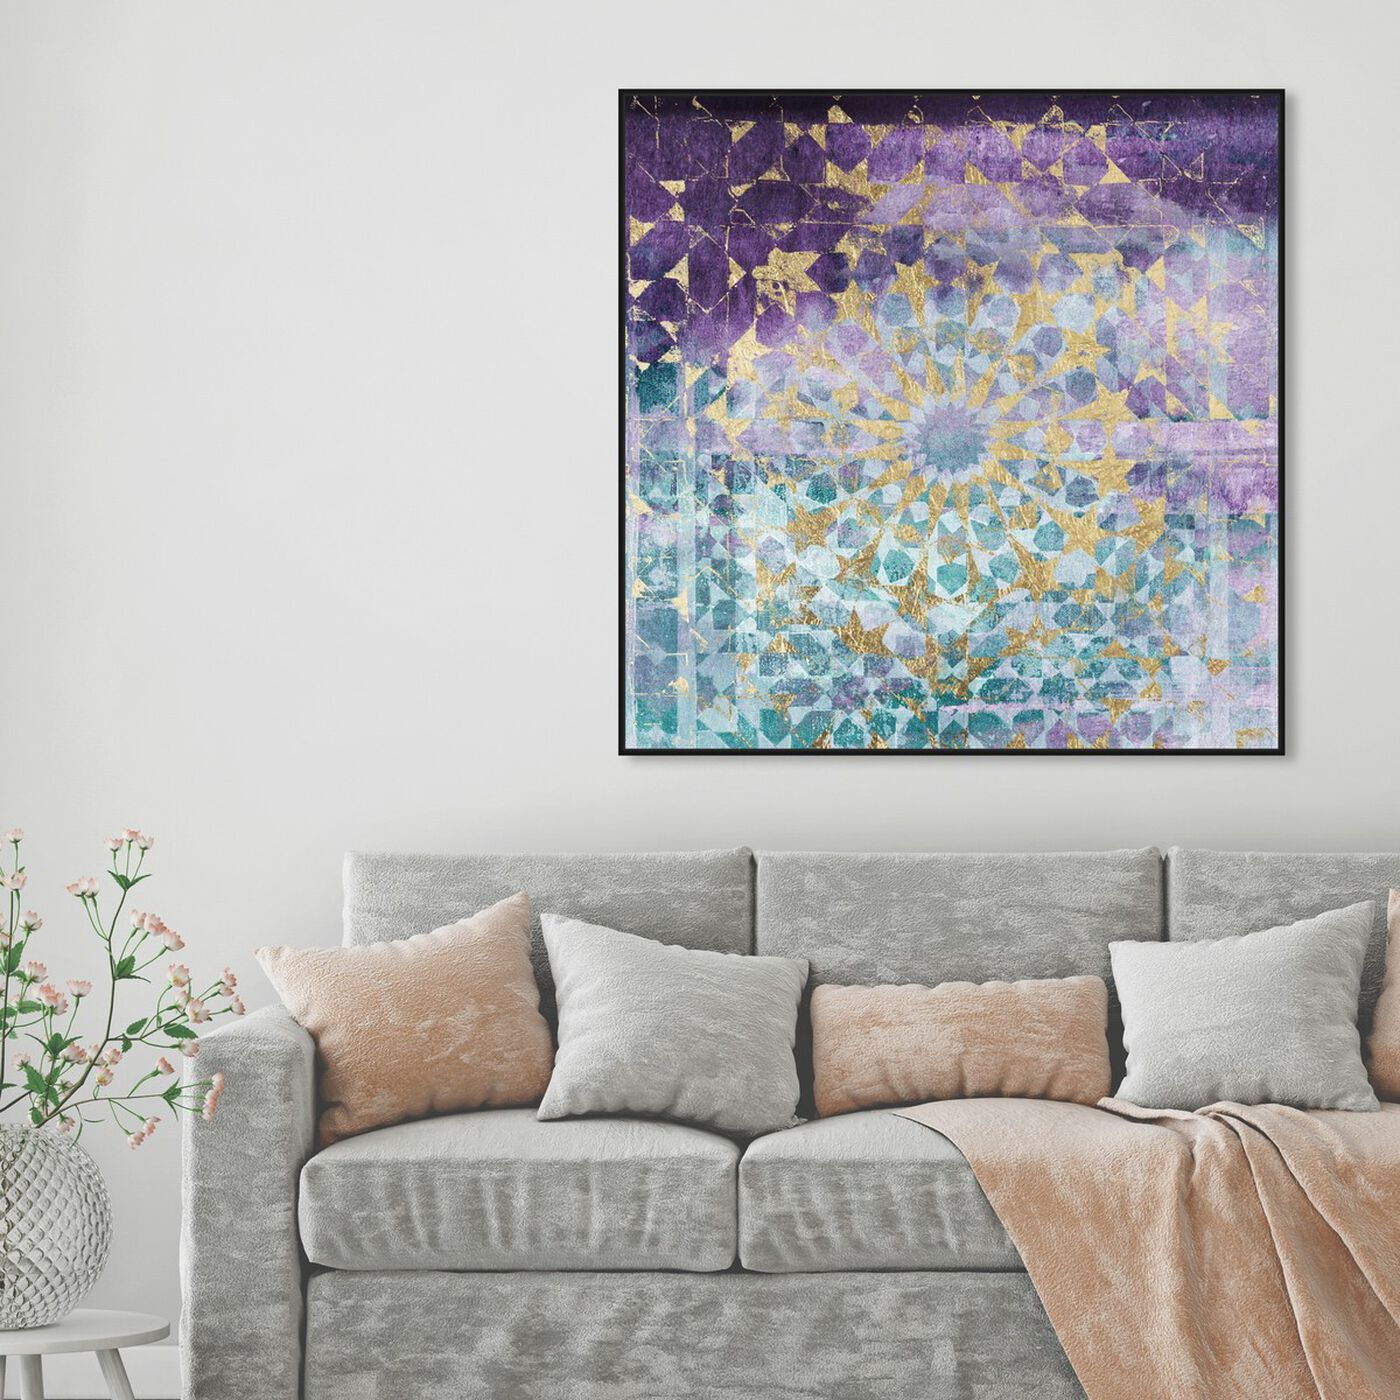 Hanging view of Viridian Violet Mandala featuring abstract and patterns art.